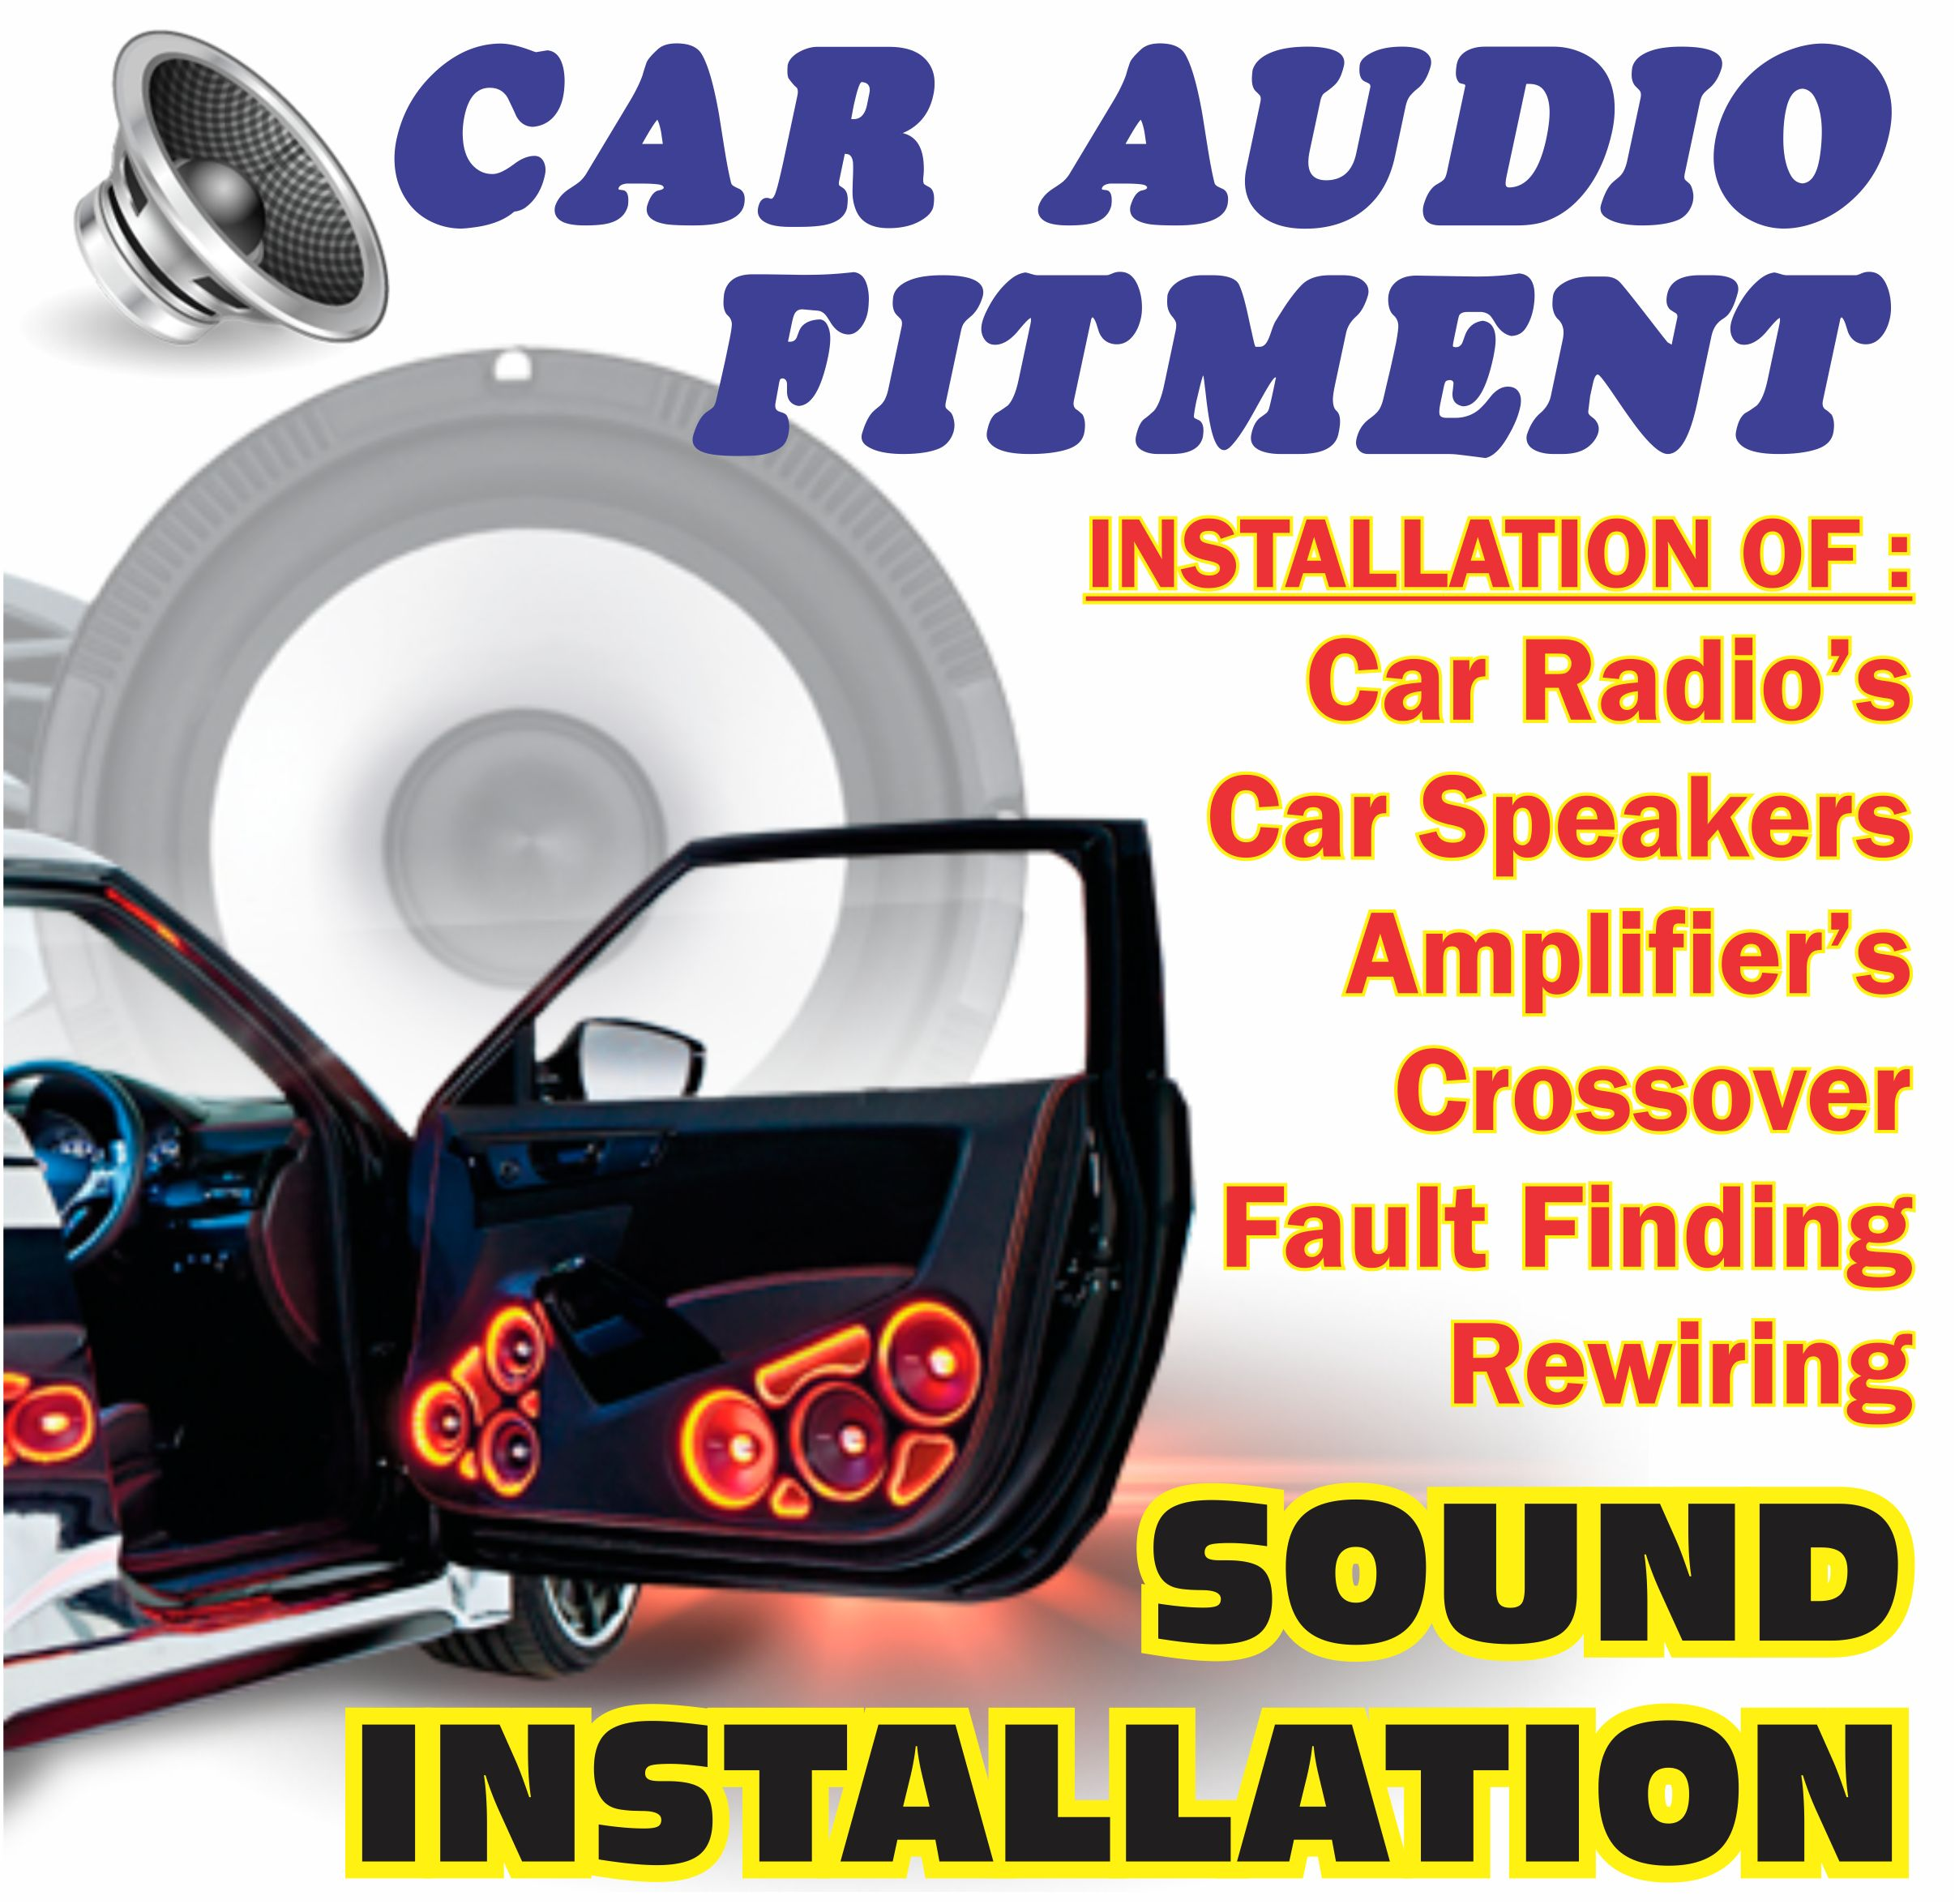 Image Audio 4.2   (29) � Car stereo store Umhlanga � 031 566 6444 Closes soon ? 5PM  SOUNDLAB 3.6   (23) � Car stereo store Durban � 031 823 7248 Open now  Soundlab Durban 3.7   (6) � Car stereo store Durban � 031 368 1040 Closes soon ? 5PM More places  Web results Car sound fitment in KwaZulu-Natal | Gumtree ... - Durban https://www.gumtree.co.za ? s-kwazulu+natal ? car+sound+fitment Results 1 - 20 of 51 - Find car sound fitment in KwaZulu-Natal! View Gumtree Free Online Classified Ads for car sound fitment and more in KwaZulu-Natal. Car sound fitment in Durban City | Gumtree Classifieds in ... https://www.gumtree.co.za ? s-durban-city ? car+sound+fitment Find car sound fitment in Durban City! View Gumtree Free Online Classified Ads for car sound fitment and more in Durban City. Image Audio Umhlanga https://imageaudio.co.za Jul 10, 2015 - Welcome to Image Audio Umhlanga. We pride ourselves on being one of SA's leading Auto Fitment Centres ? specialising in Custom Sound ... ?In Car Entertainment � ?Aftermarket Fitment � ?Custom Car Audio � ?Contact Us Jays Auto Care: Fitment centre Umhlanga | Car alarms ... https://jaysautocare.co.za Fitment centre Umhlanga | vehicle tracking, sound systems & car alarms. Jays Auto Care in Umhlanga, Durban are a leading vehicle fitment centre specialising in the installation of security car alarms, sat nav vehicle navigation and car stereo sound systems. We replace old parts with leading factory brands. The 10 Best Car Audio Specialists in Springfield, Durban ... https://www.snupit.co.za ? durban ? springfield ? car-audio-fitment Get quotes from the most trusted Car Audio Specialists in Durban. Rated and ... Top 10 Best Car Audio Specialists for car audio fitment in Springfield, Durban. Soundlab ? sound equipment, service and fitment https://soundlab.co.za Audio Gods 8inch High Performance Subwoofer with built in amp. R2,200.00 R1,099.00 Add to cart � Sale! Audio Gods 10 inch High Performance Subwoofer. ?Targa � ?Dr Artex � ?12? Subwoofer + 4 channel ... Car Audio - Durban - Max Motorsport https://www.maxmotorsport.co.za ? audio Vibe Anti Sound Deadening Mats. R70.00 ... Sound Stream RCA Cable 1M 2 into 2. R80.00 .... Audio Gods Thor Series 6